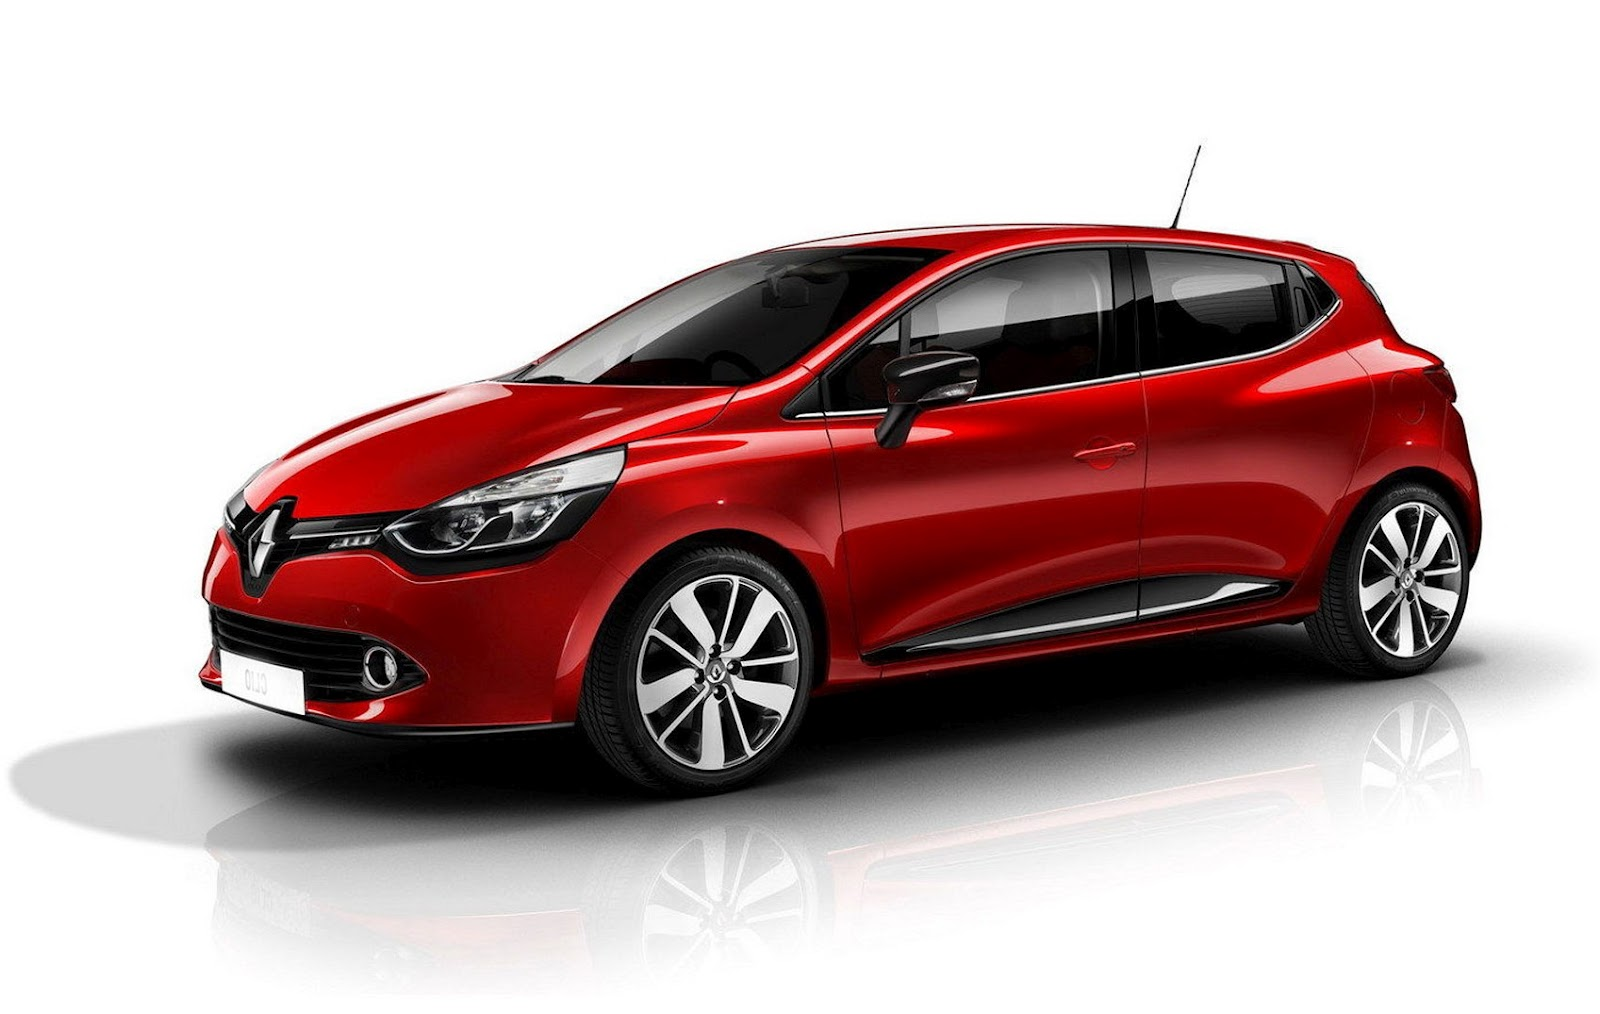 2013 renault clio red all about cars. Black Bedroom Furniture Sets. Home Design Ideas